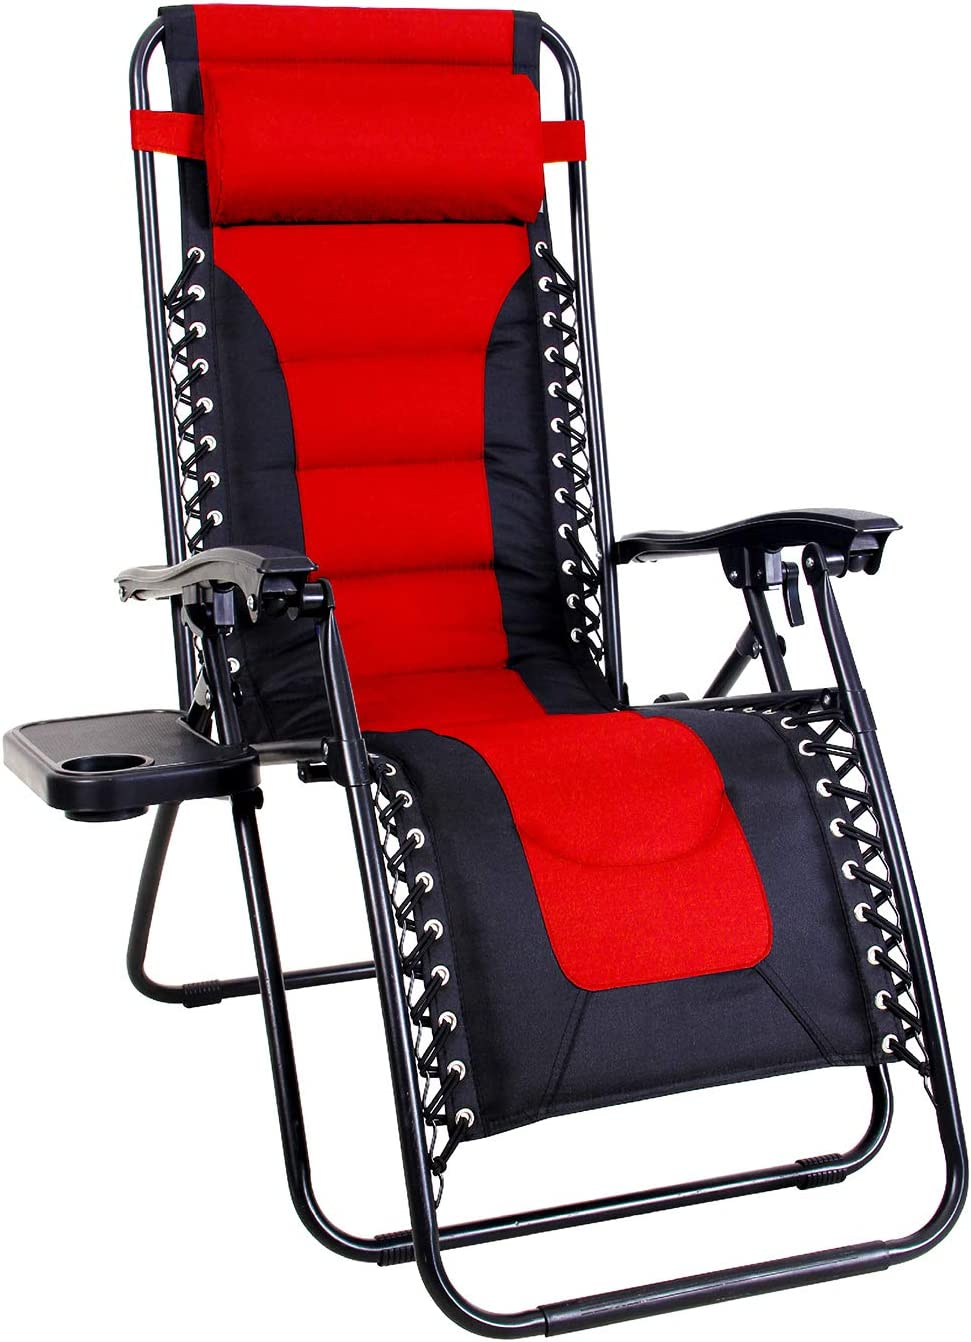 MFSTUDIO Zero Gravity Chair Large Portable Patio Recliners Adjustable Padded Folding Chair with Cup Holder for Poolside Outdoor Yard Beach, Red